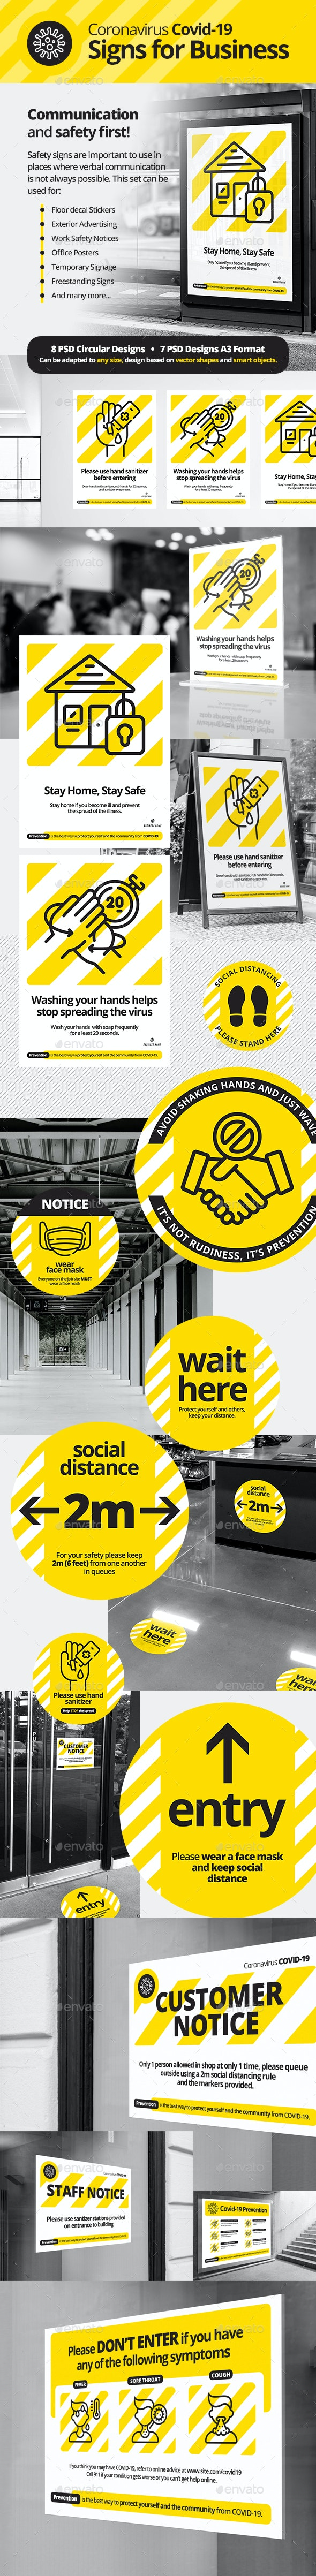 Health and Safety Signs for Business - Signage Print Templates